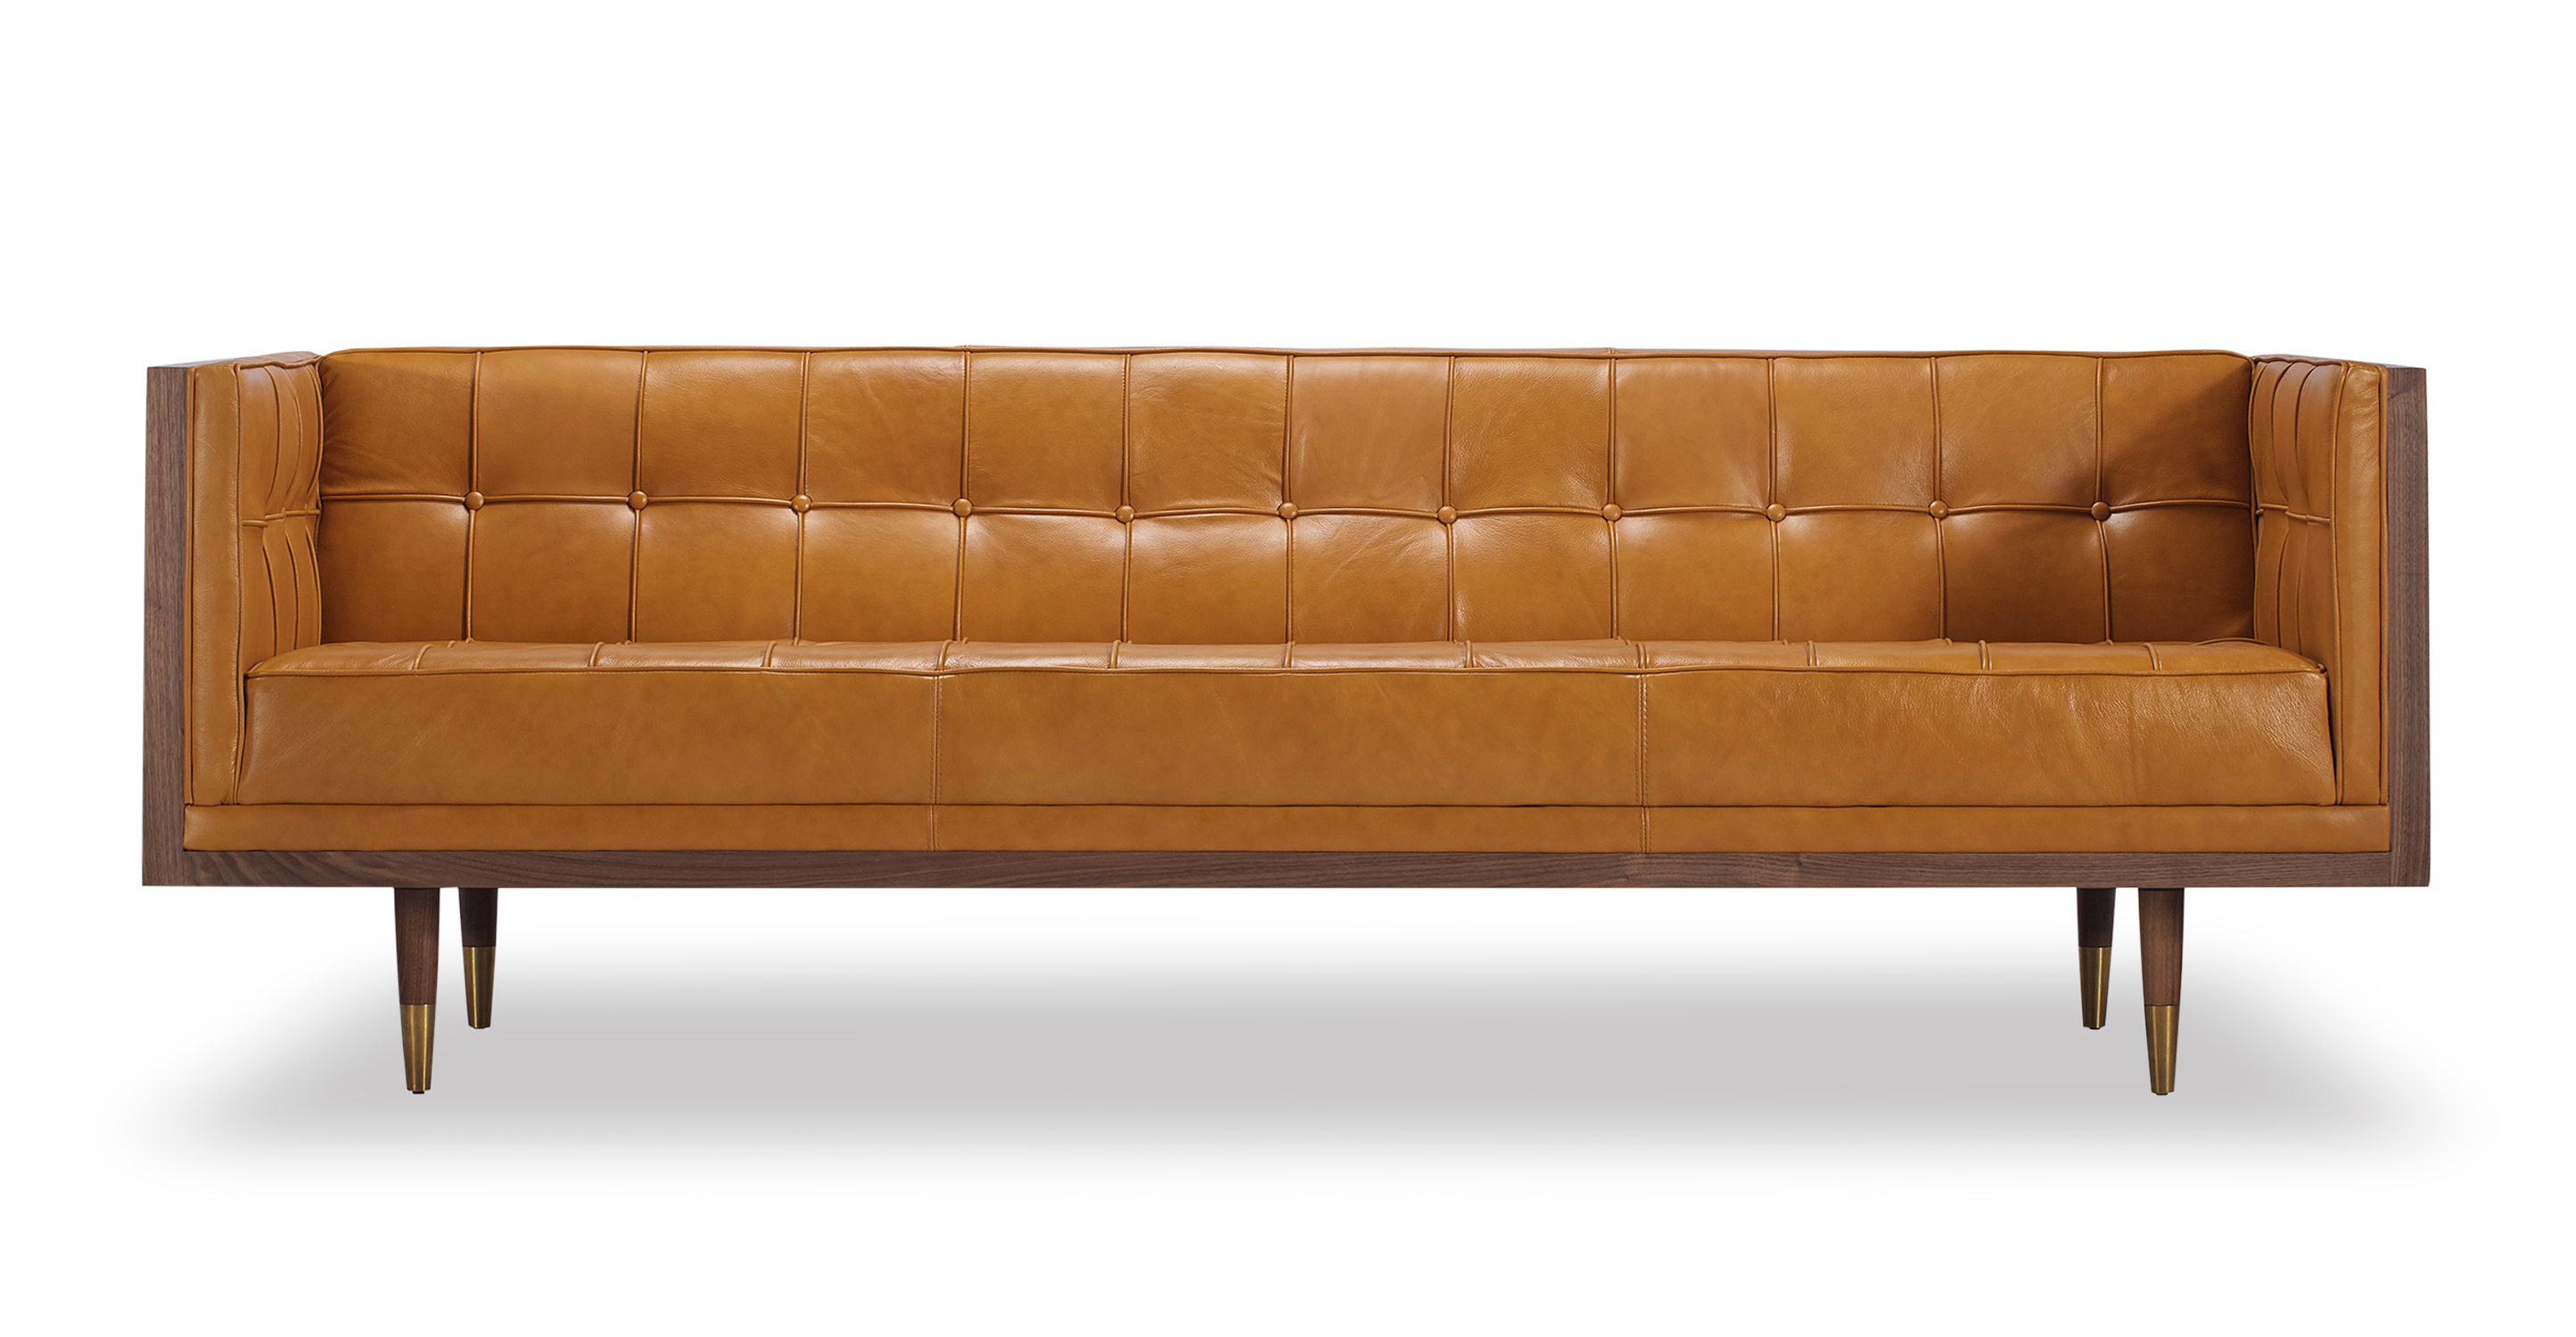 "Woodrow Box 87"" Leather Sofa, Walnut/Tan Aniline"